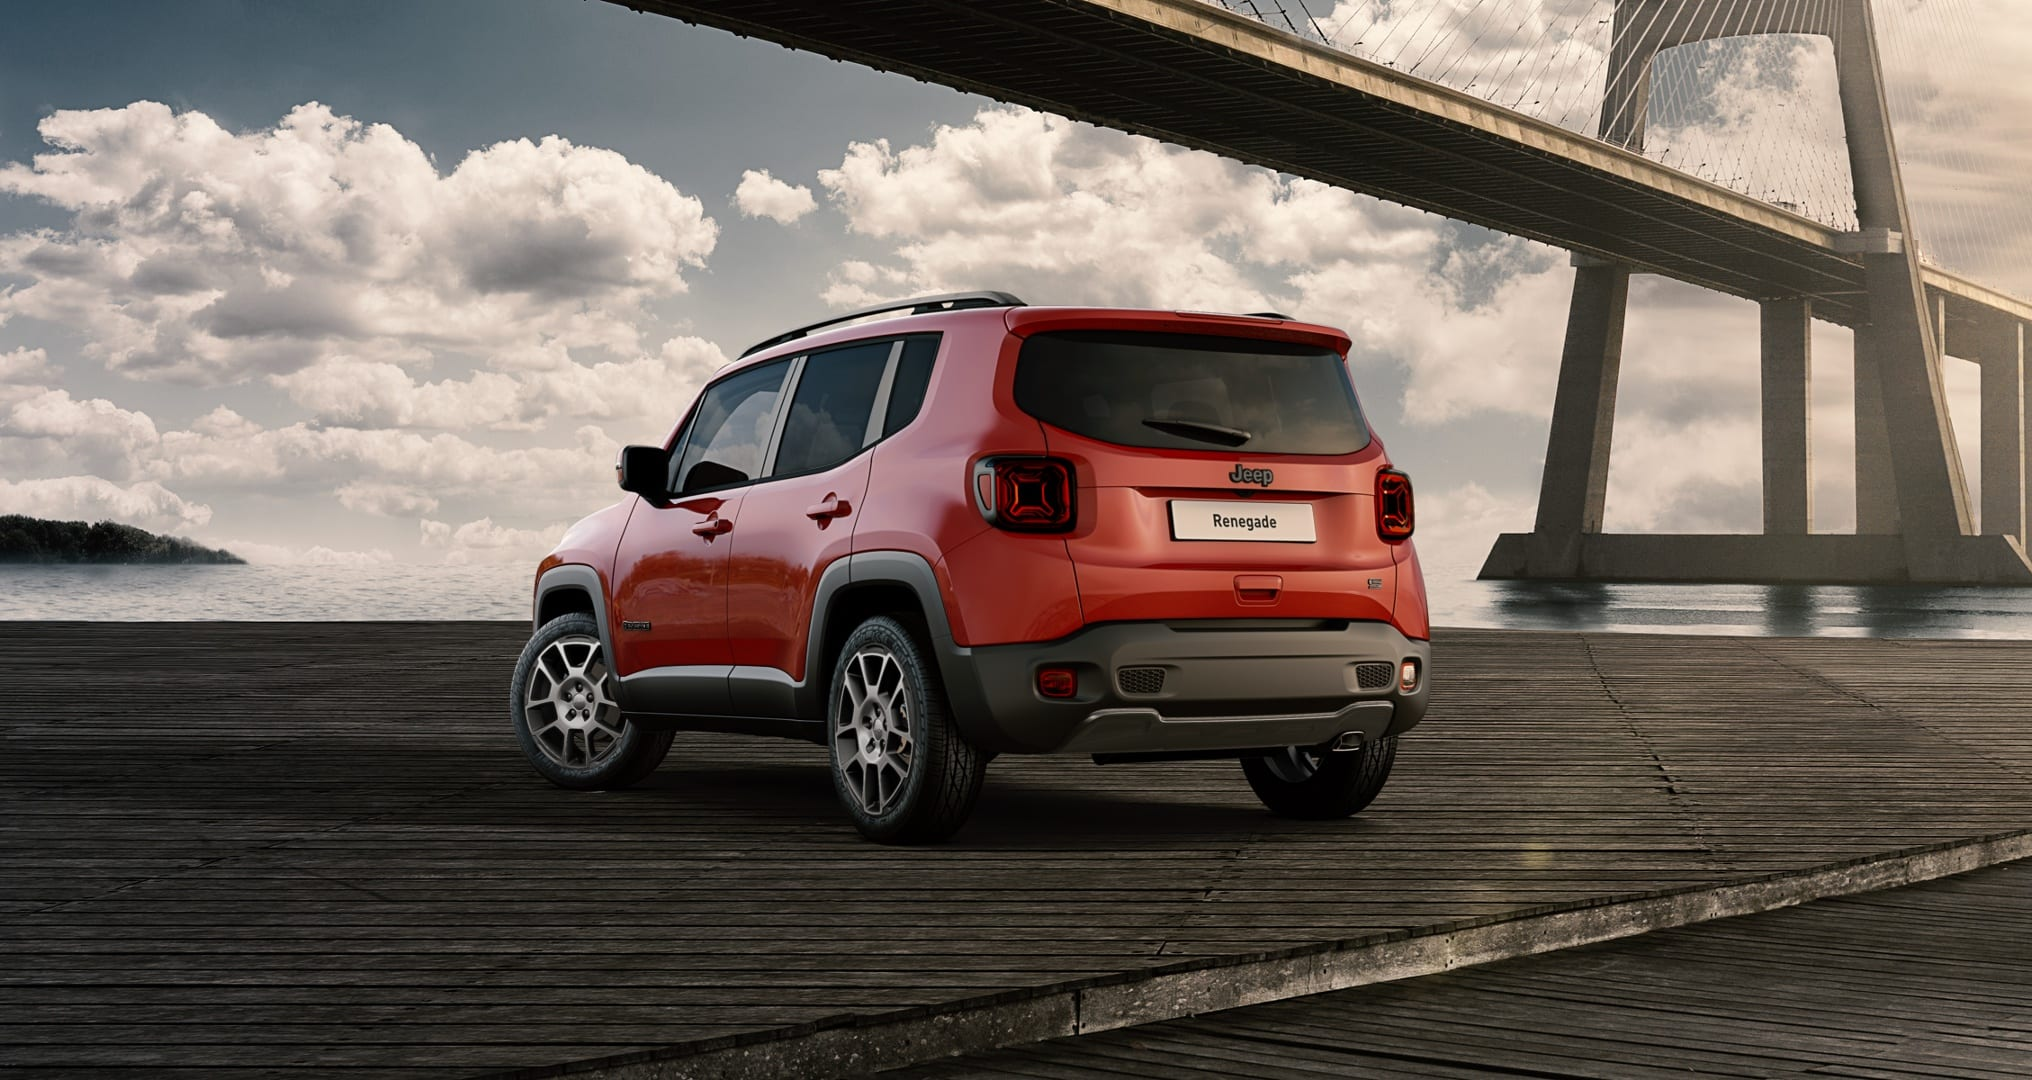 Jeep Renegade S Colorado Red - achterkant